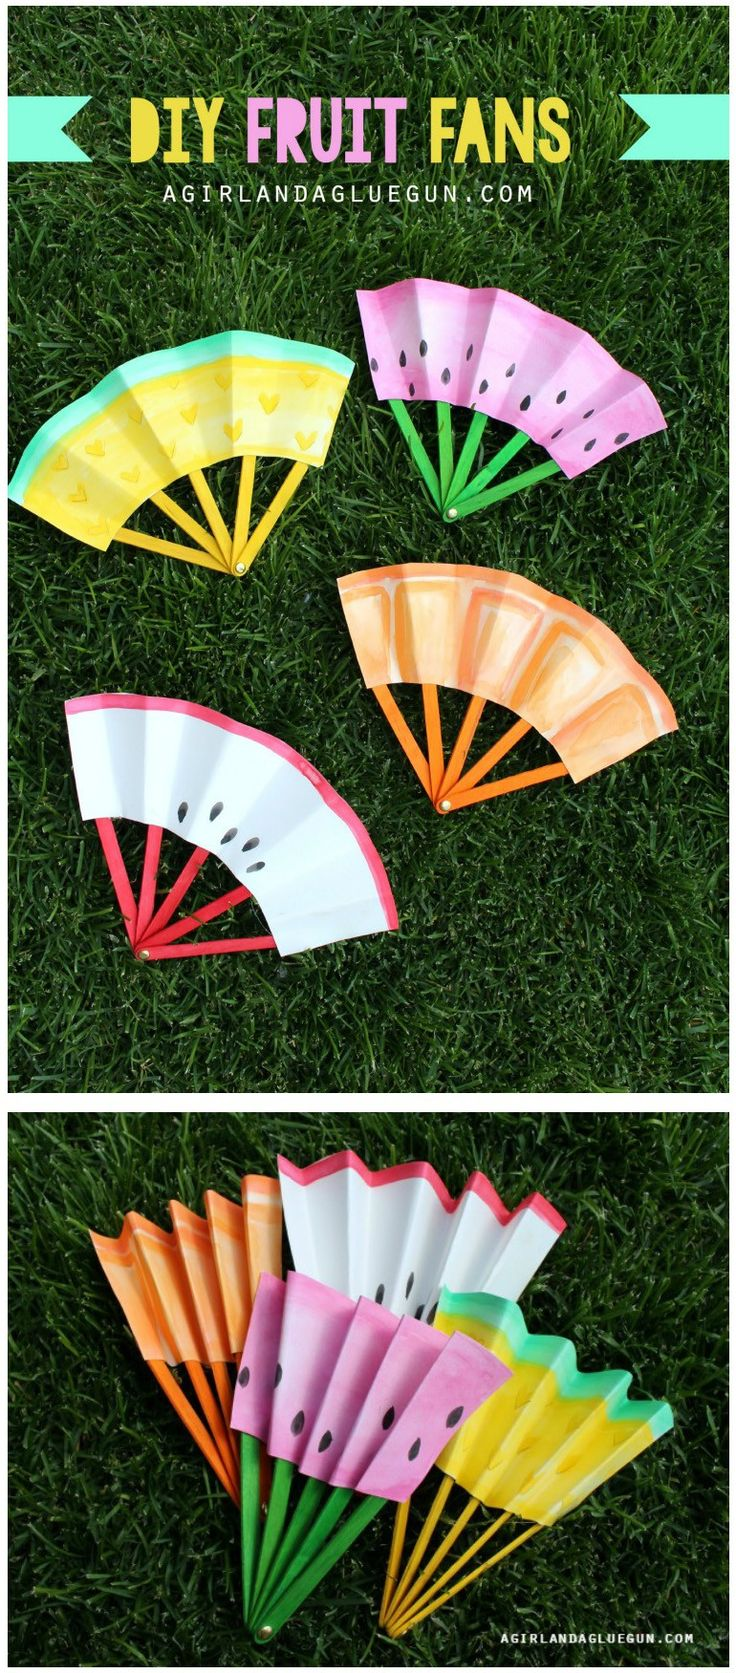 DIY Fruit Fans | 19 Easy to Make Summer Crafts for Kids